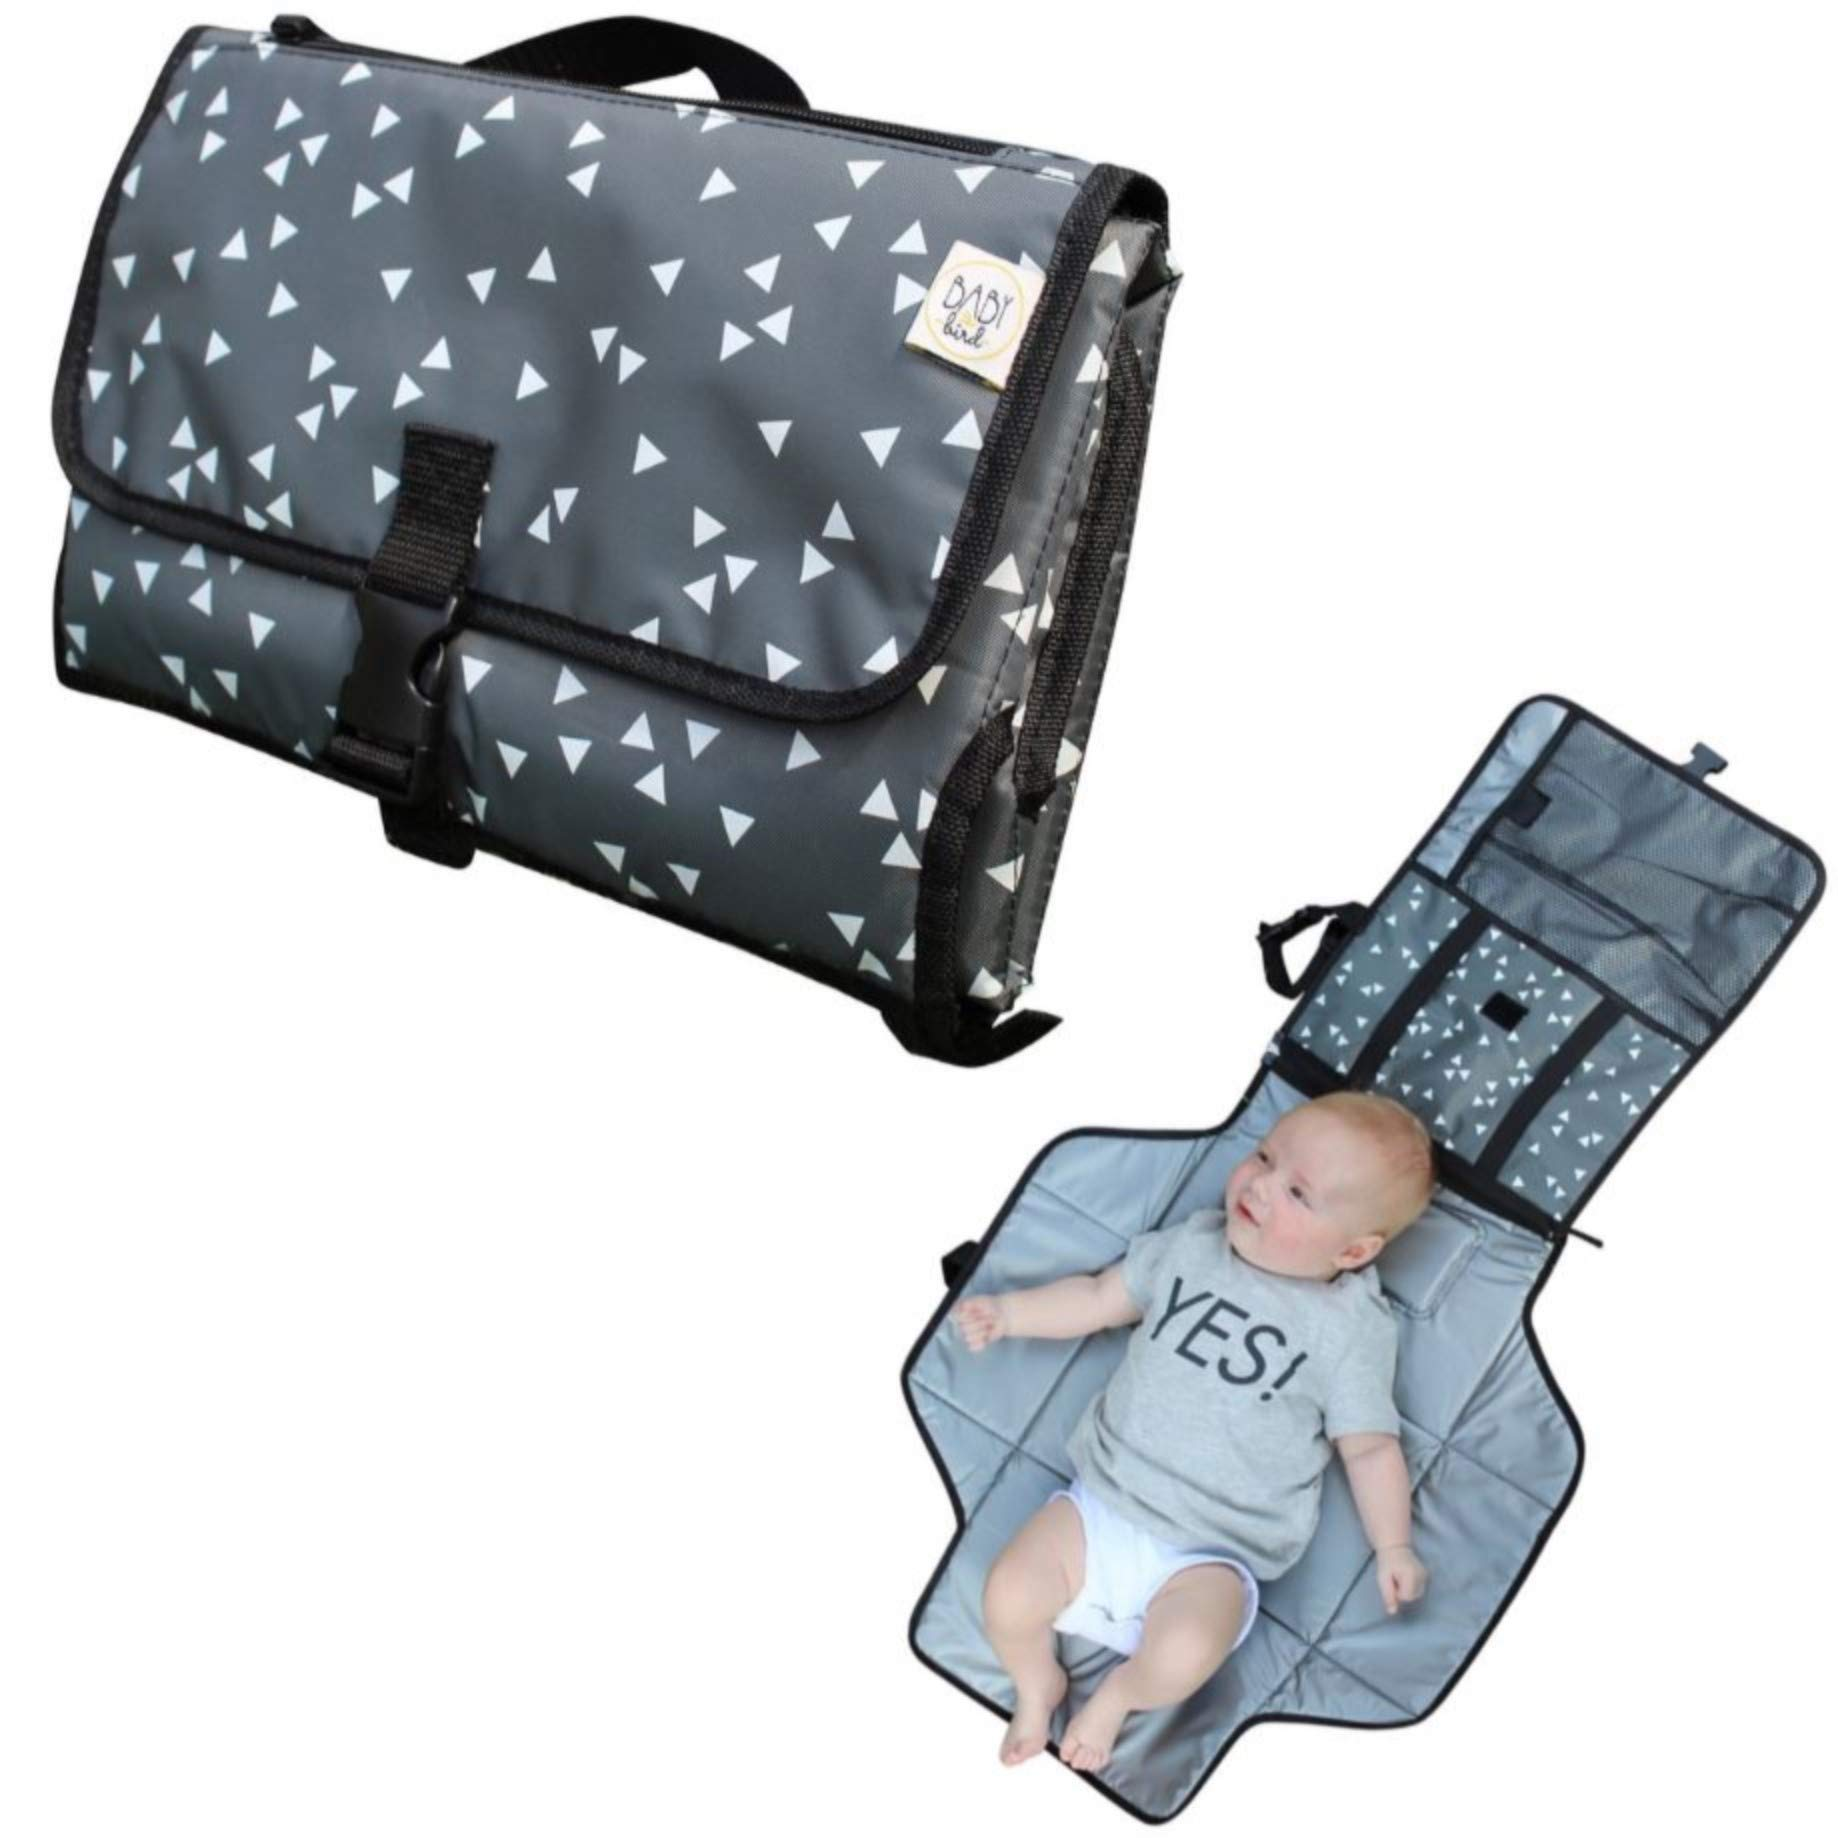 BabyBird Diaper Changing Pad - Premium Portable Lightweight Baby Changing Station - Compact and Foldable Clutch - Plus Pockets and Waterproof Wipeable Material - for Travel and Outdoor Activities